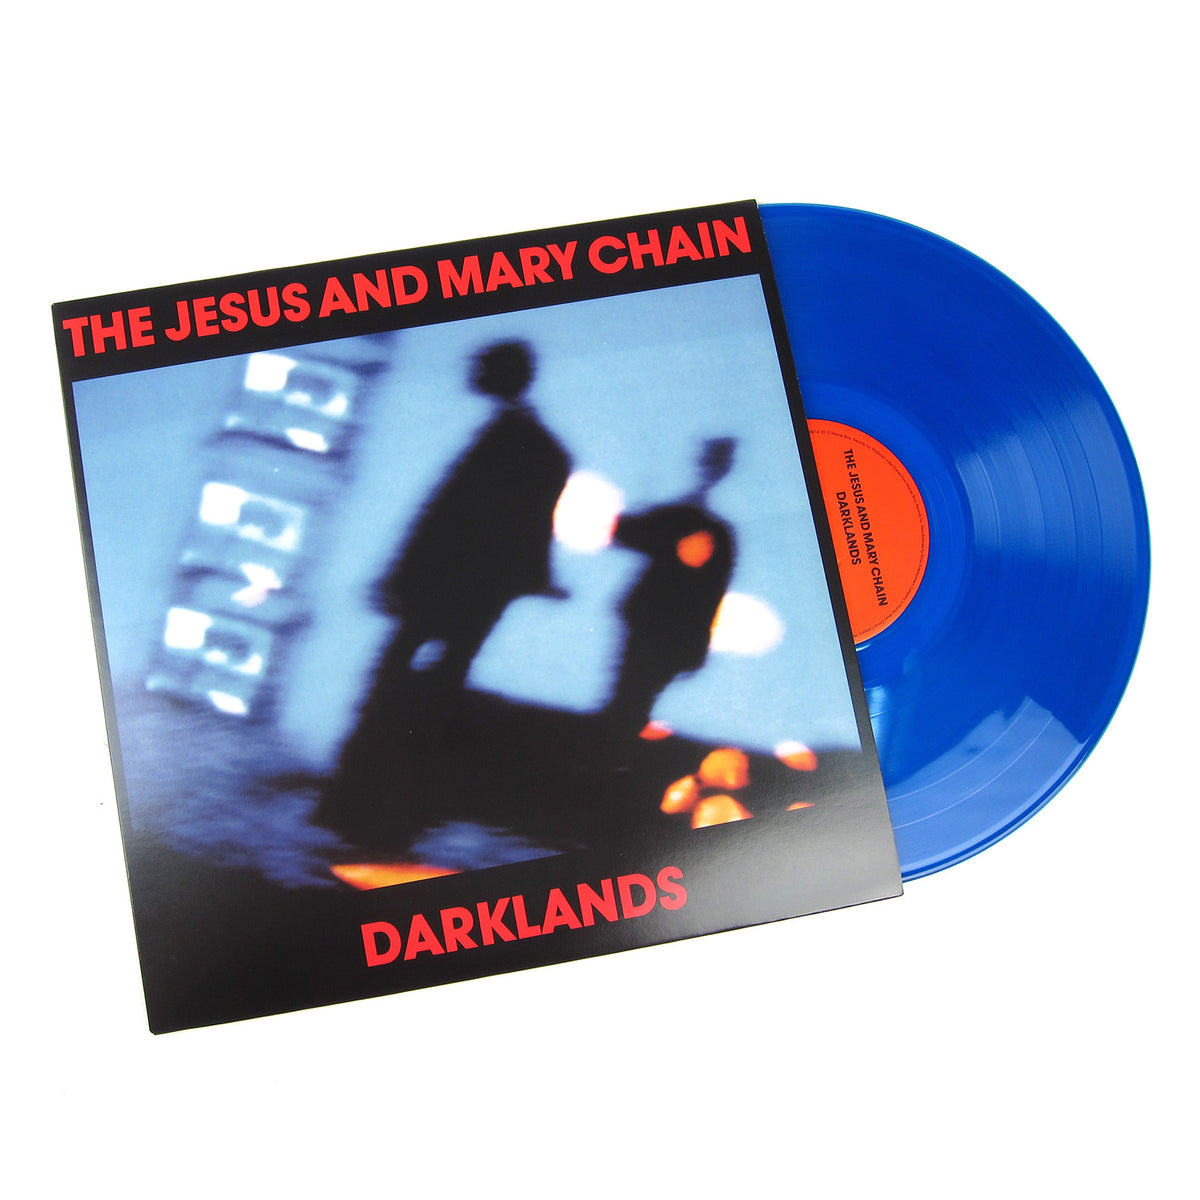 The Jesus And Mary Chain: Darklands (Colored Vinyl) Vinyl LP